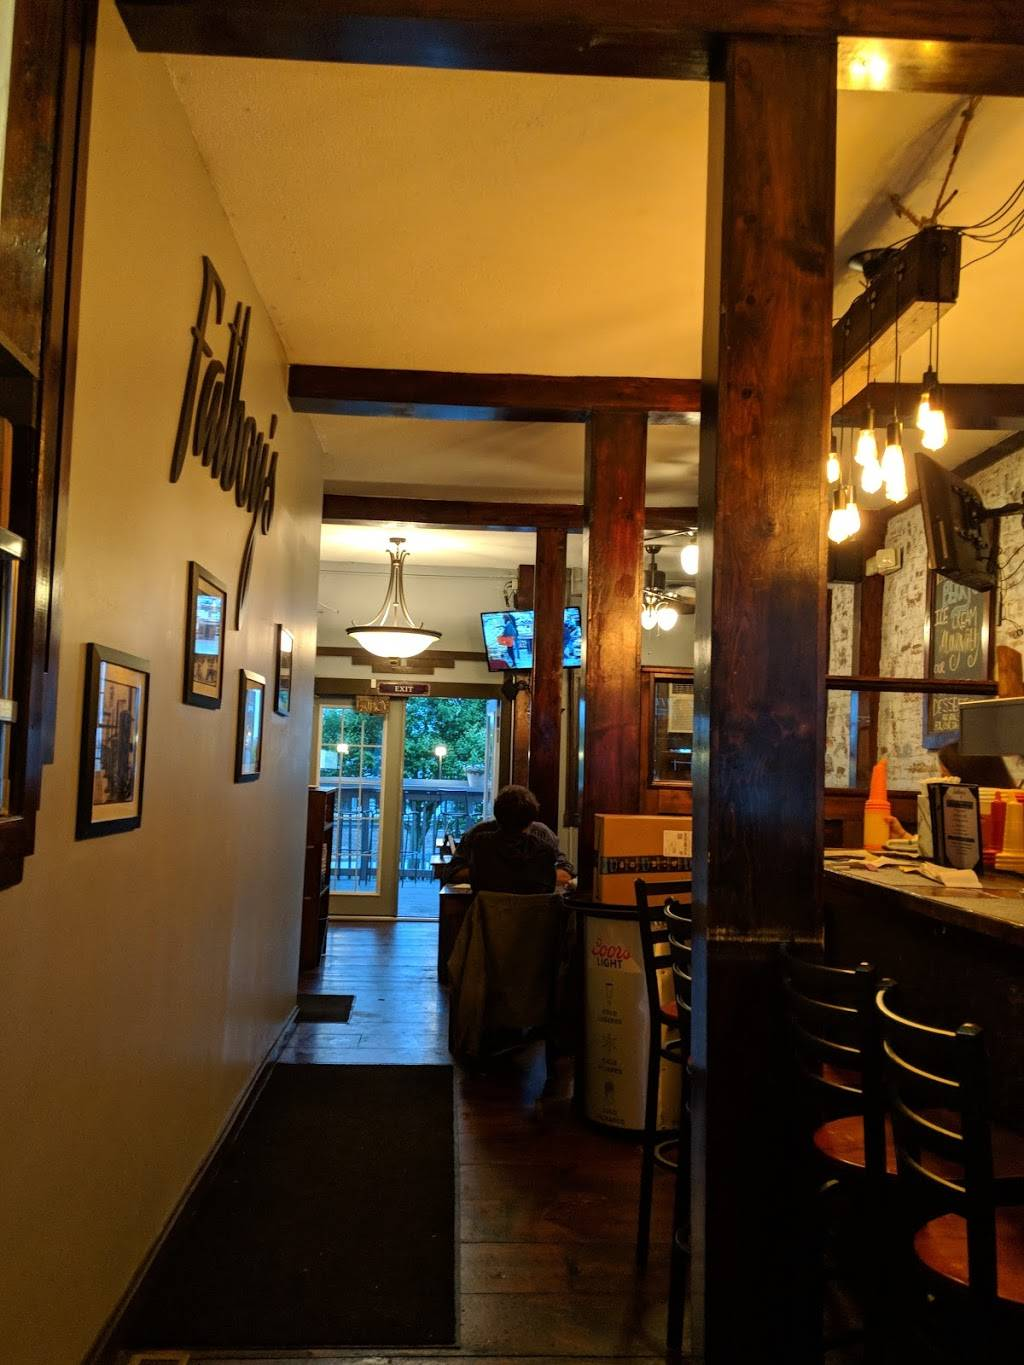 Fatboys Kitchen and Bar | restaurant | 194 Bank St, New London, CT 06320, USA | 8605749154 OR +1 860-574-9154